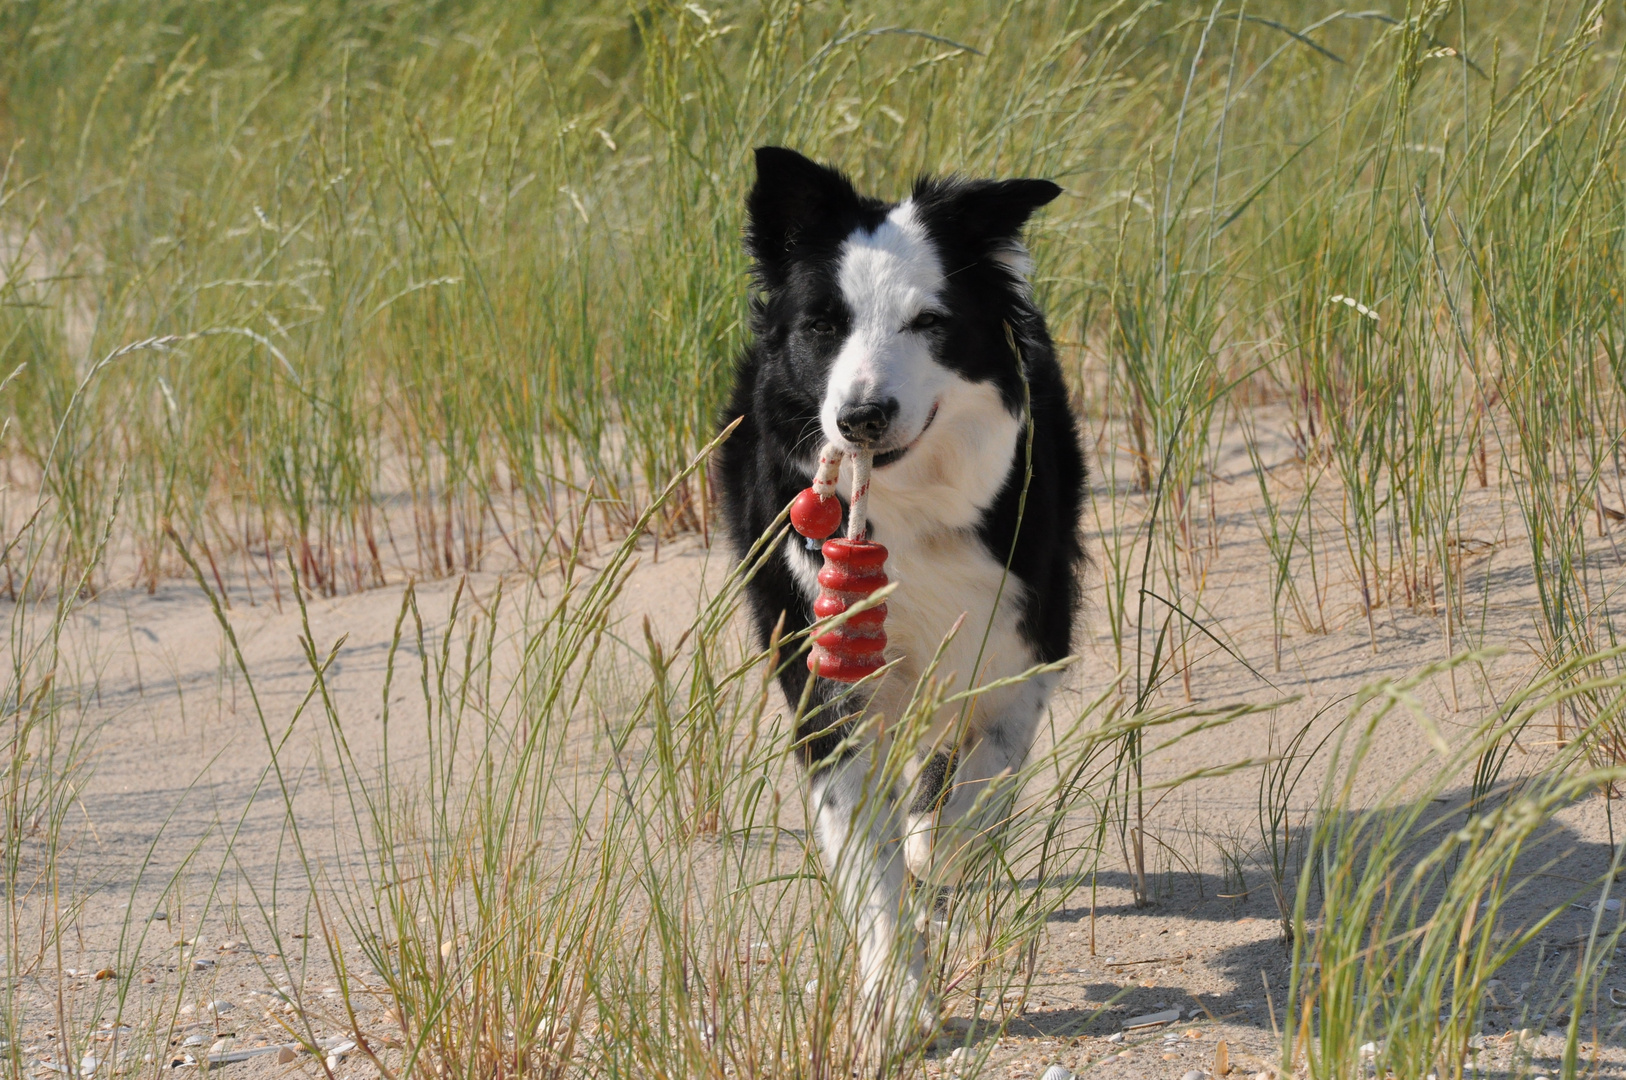 Action am Strand